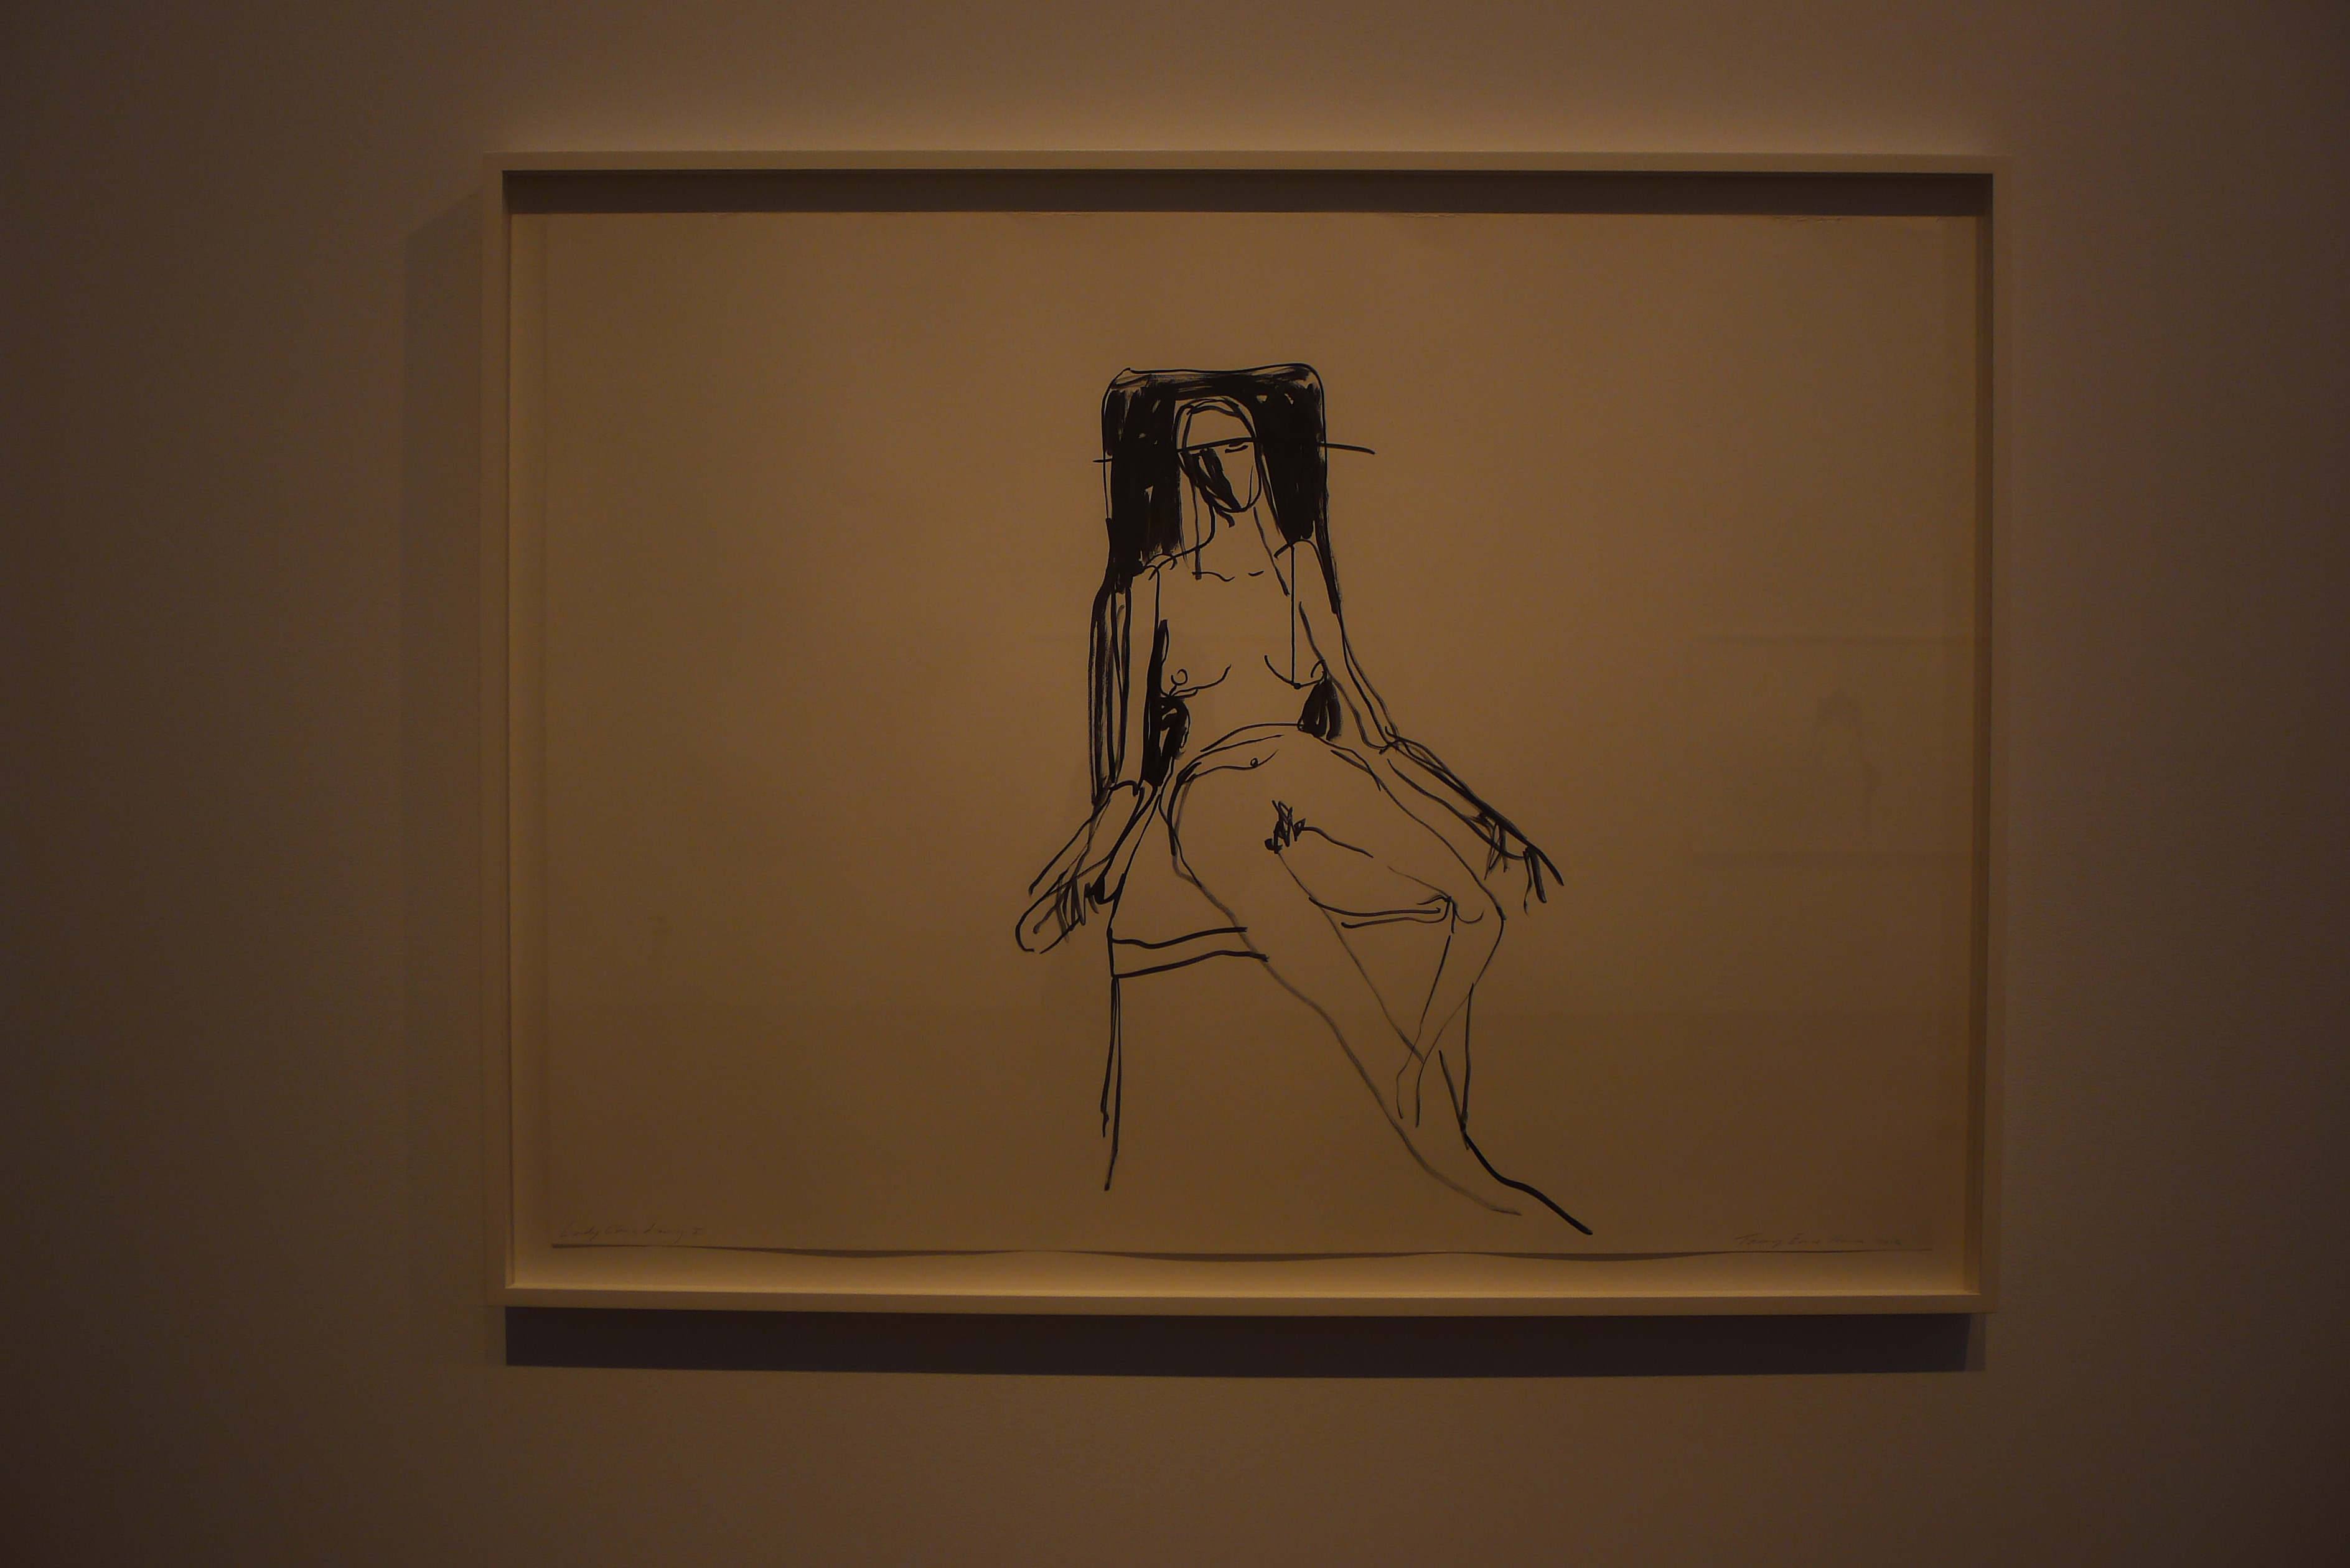 Tracey Emin exhibit